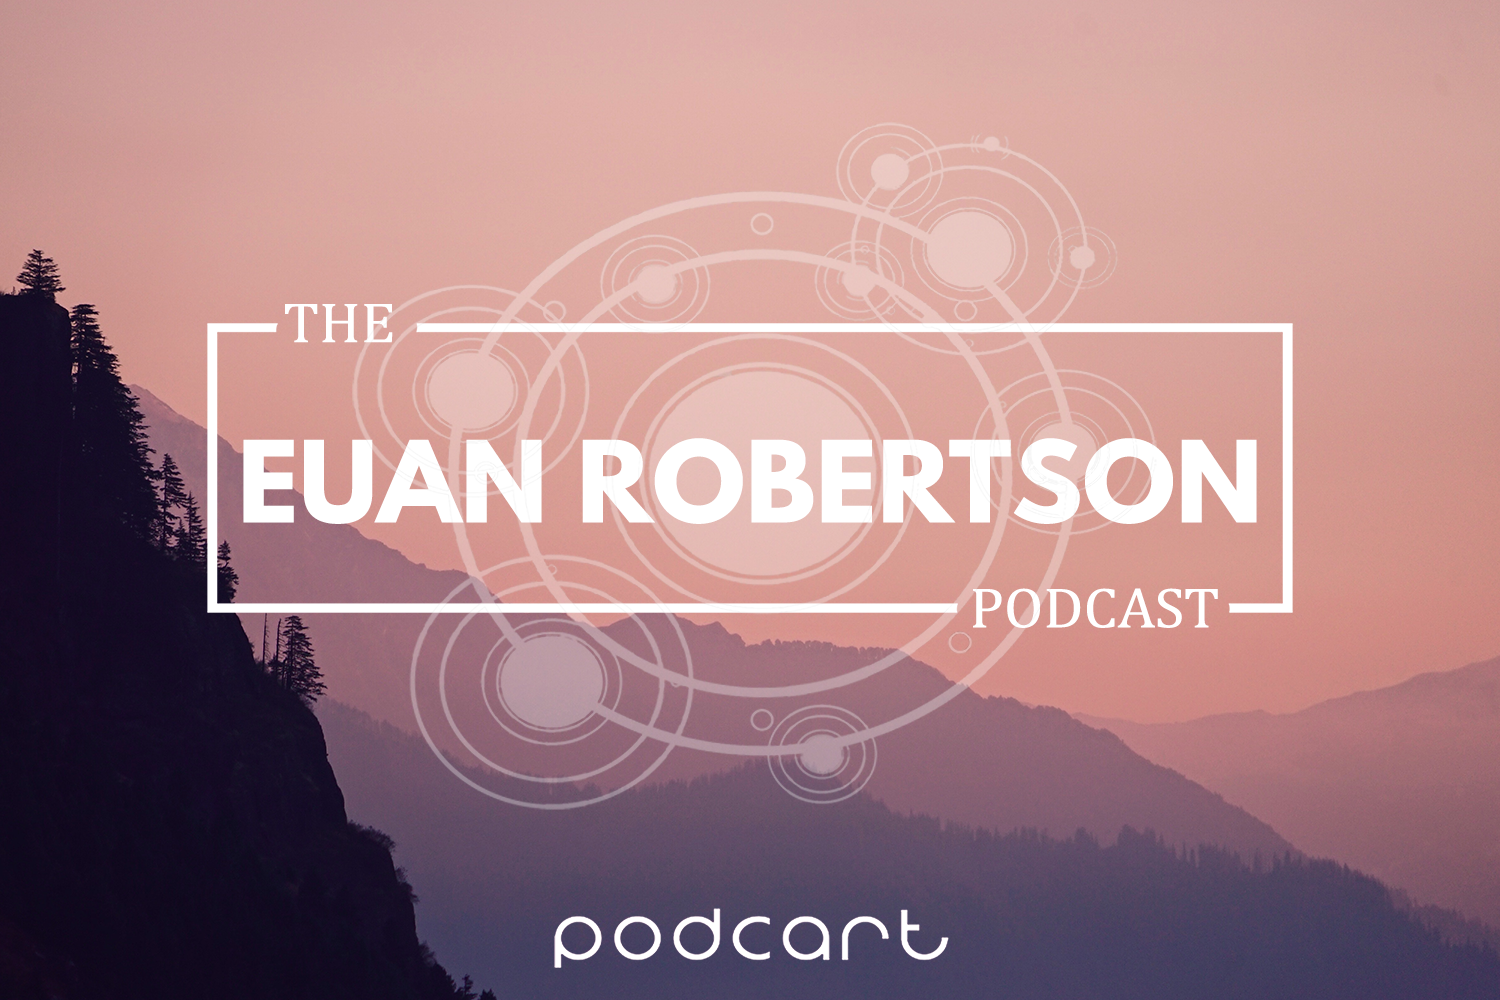 The Euan Robertson Podcast